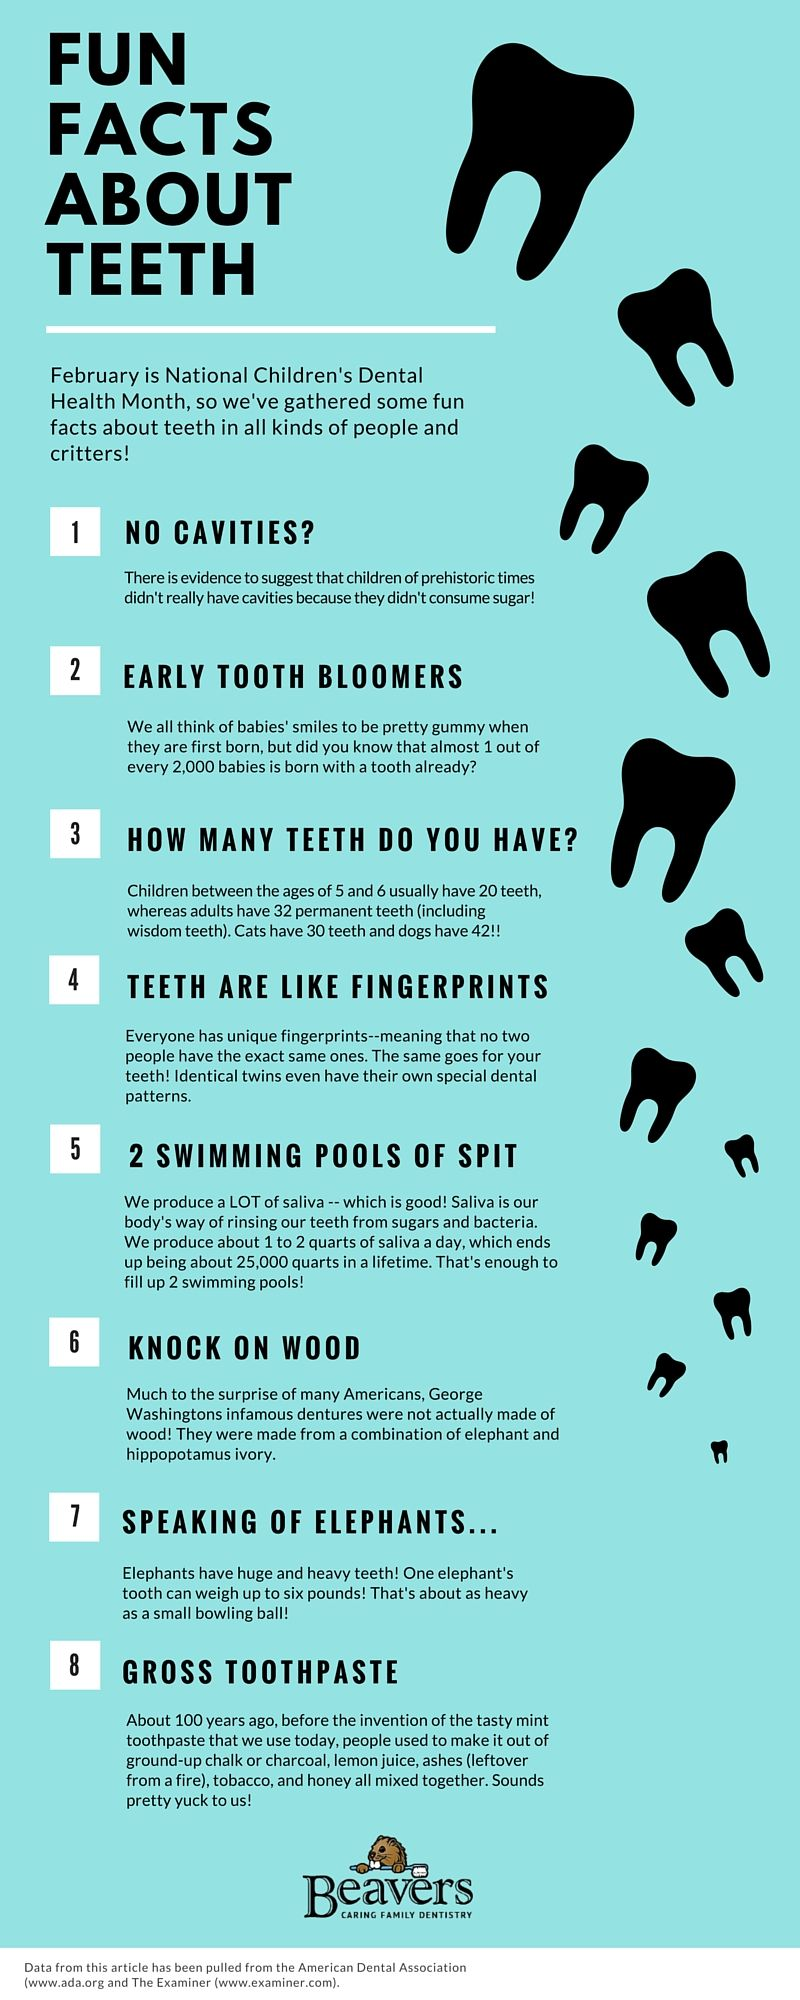 awesome dental facts are you studying for a danb or dental over of the world s youth has at least one cavity that s been left untreated let s raise awareness together we ve gathered some fun facts about teeth